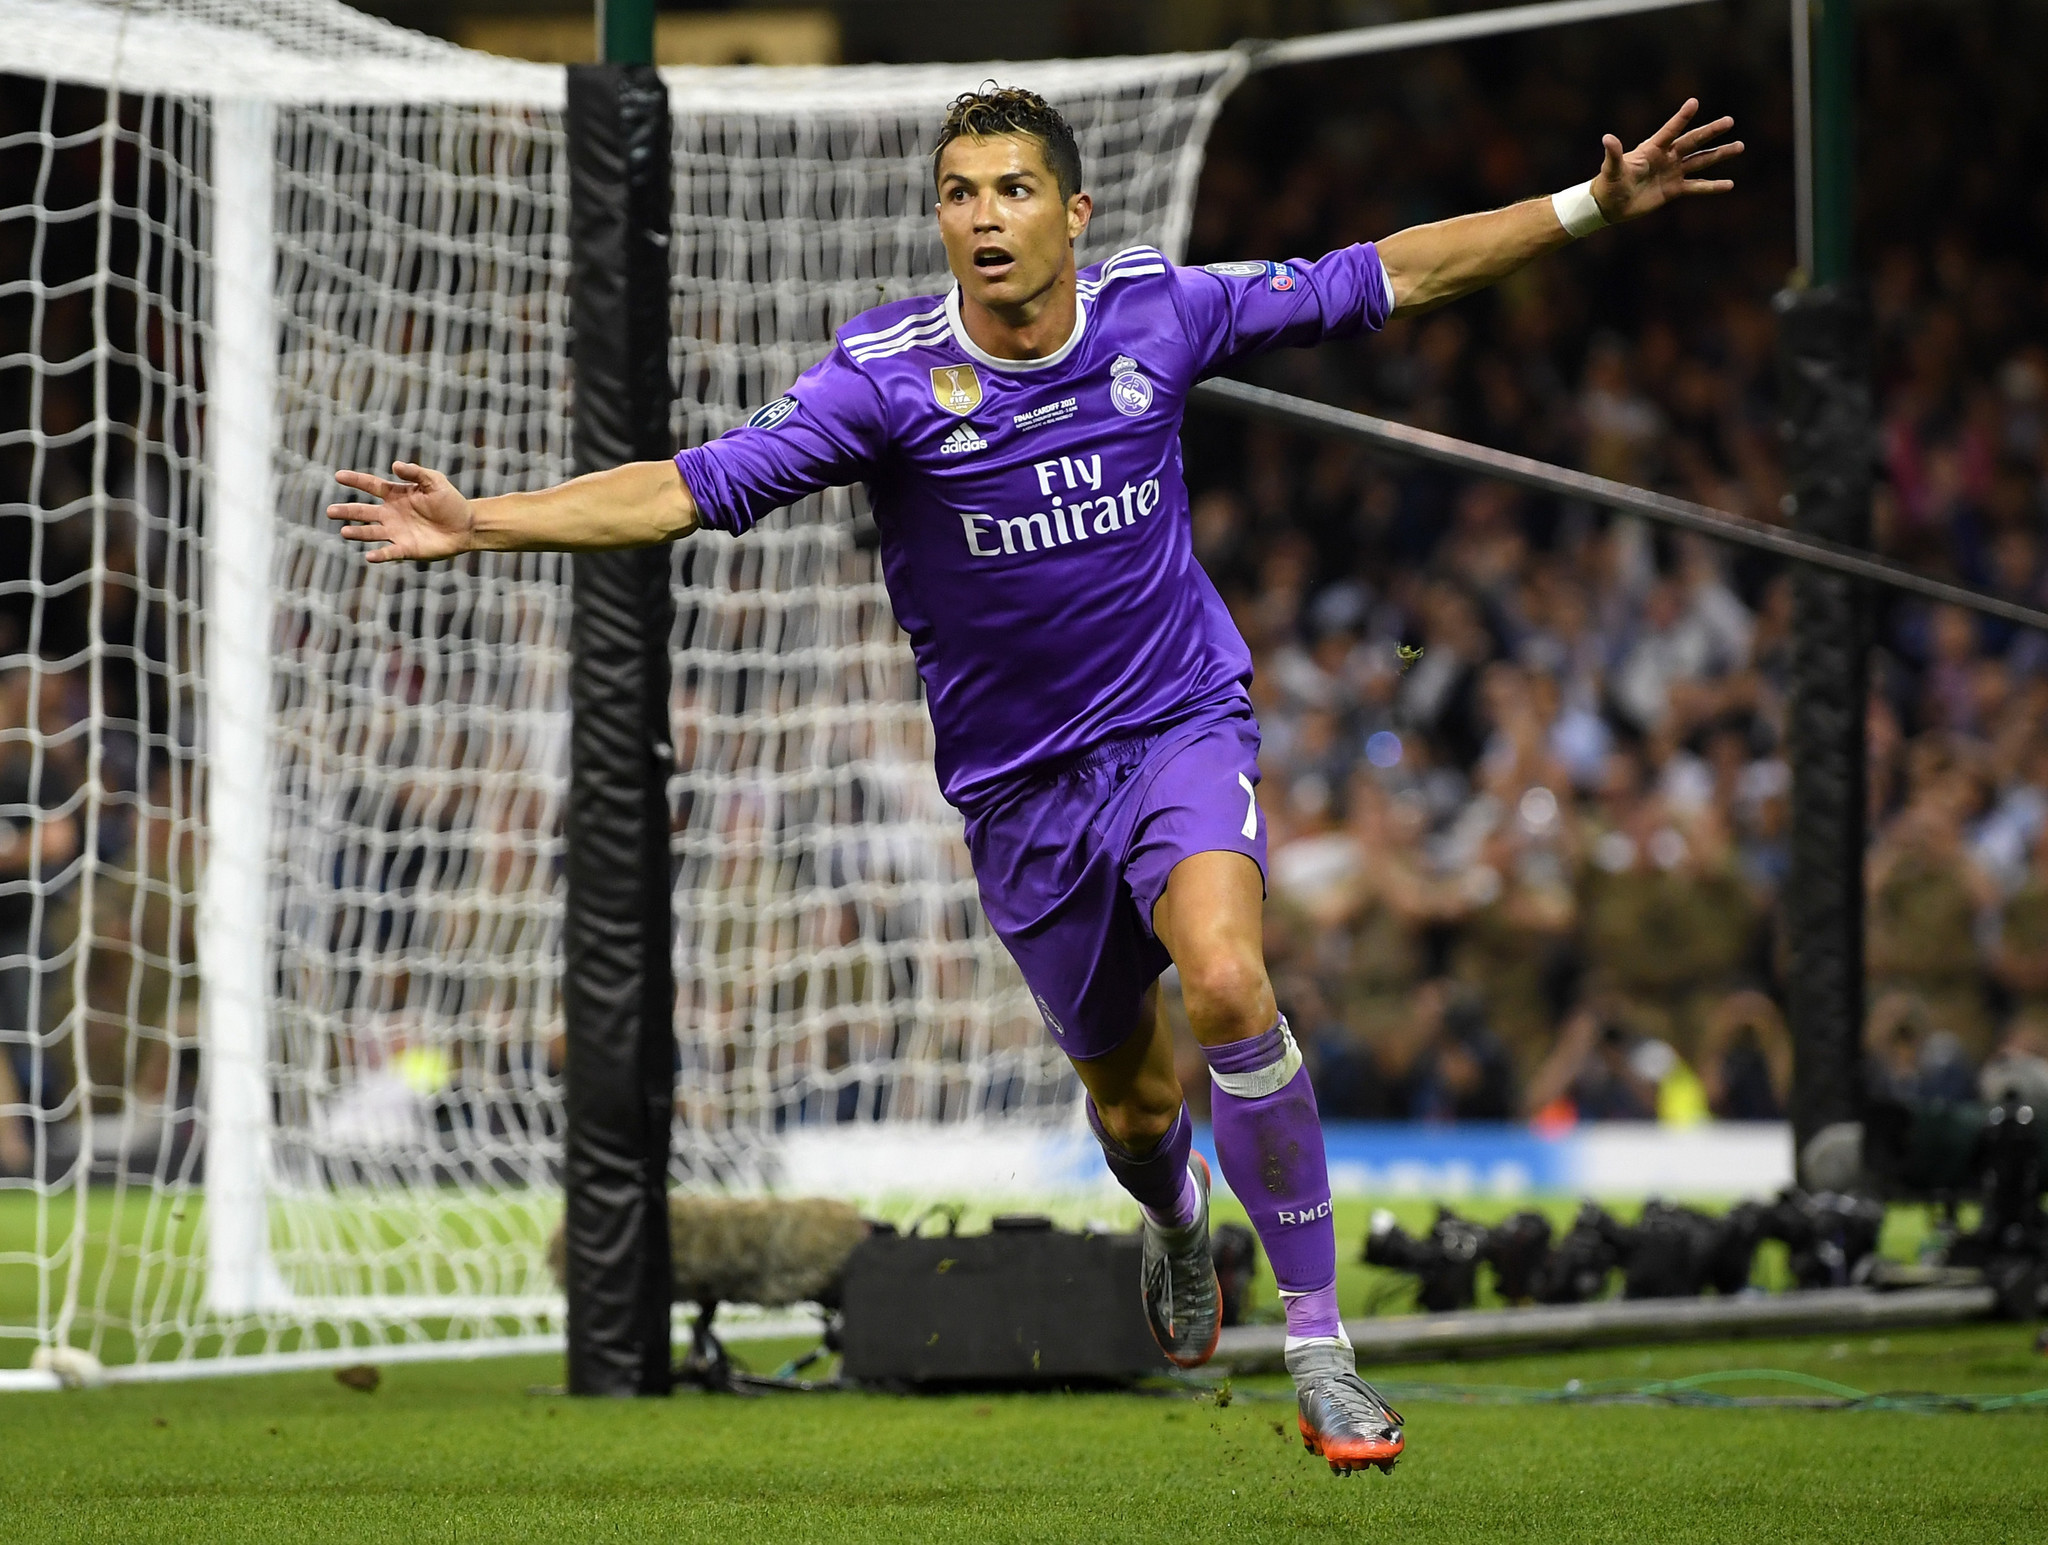 Chelsea Vs Manchester United Vs Fc Barcelona: Real Madrid's Cristiano Ronaldo Won't Be In Chicago To